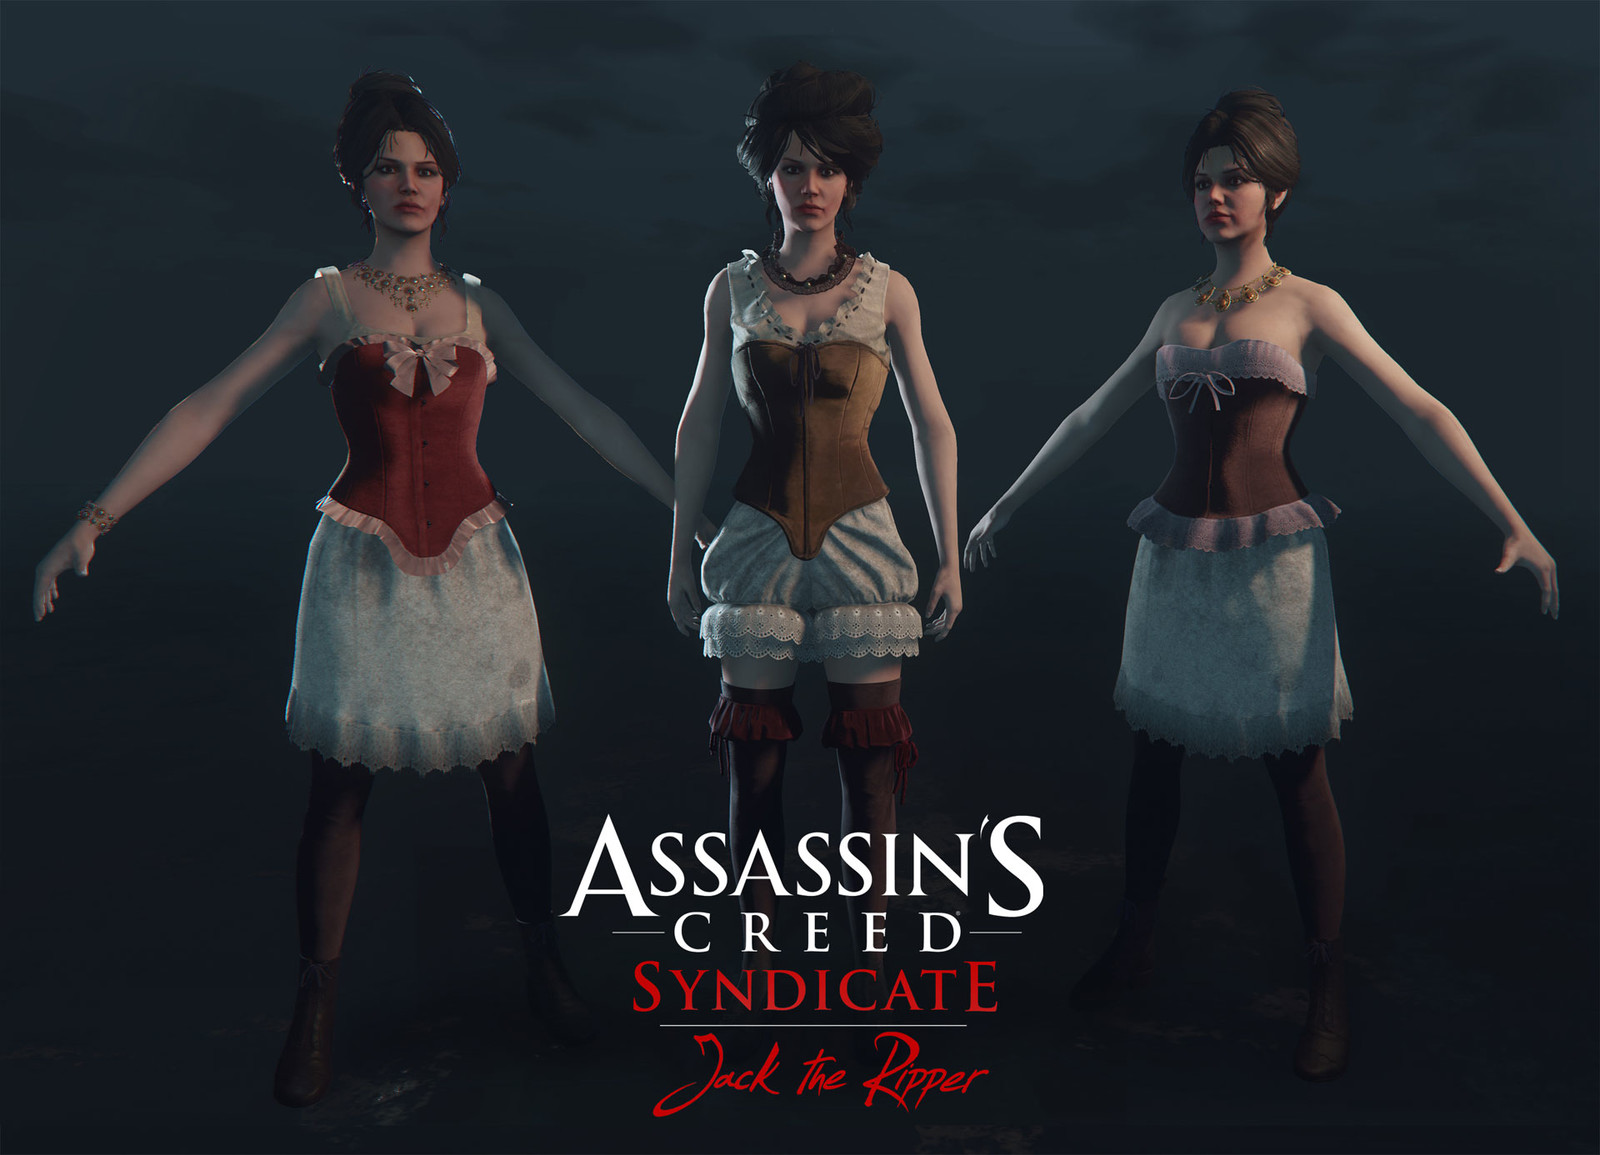 Prostitutes from : Assassin's Creed Syndicate  Jack The Ripper